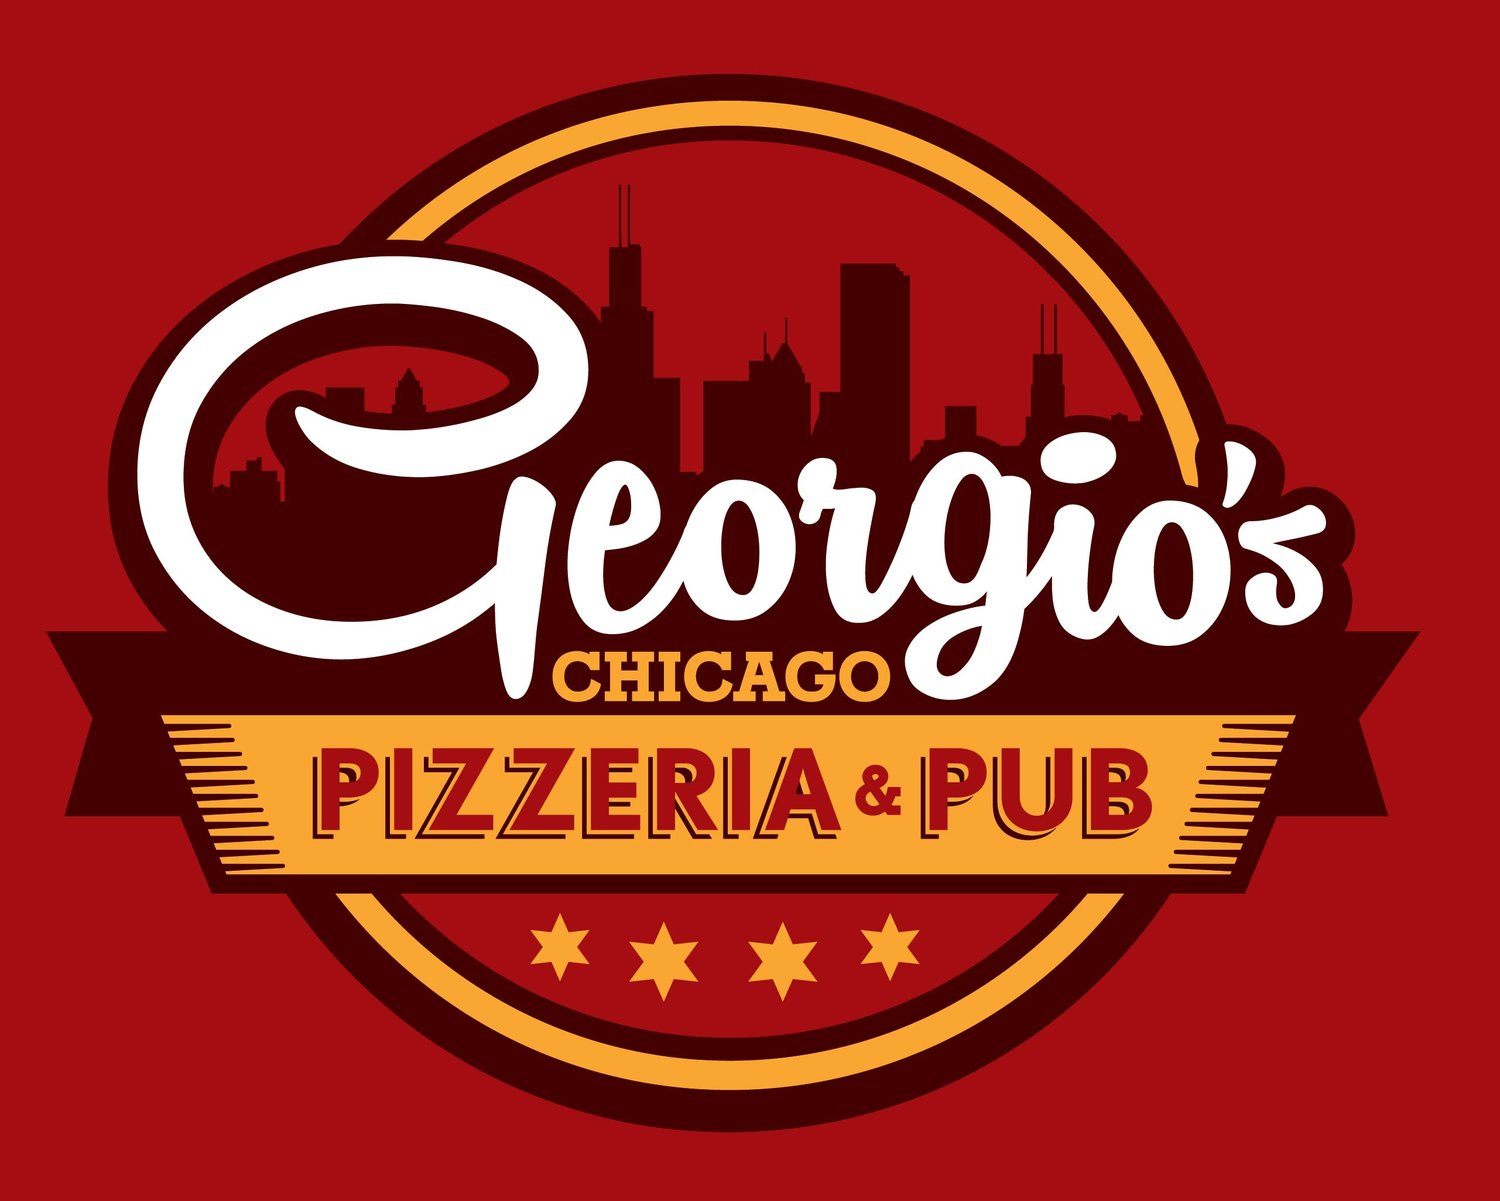 Georgio's Chicago Pizzeria & Pub